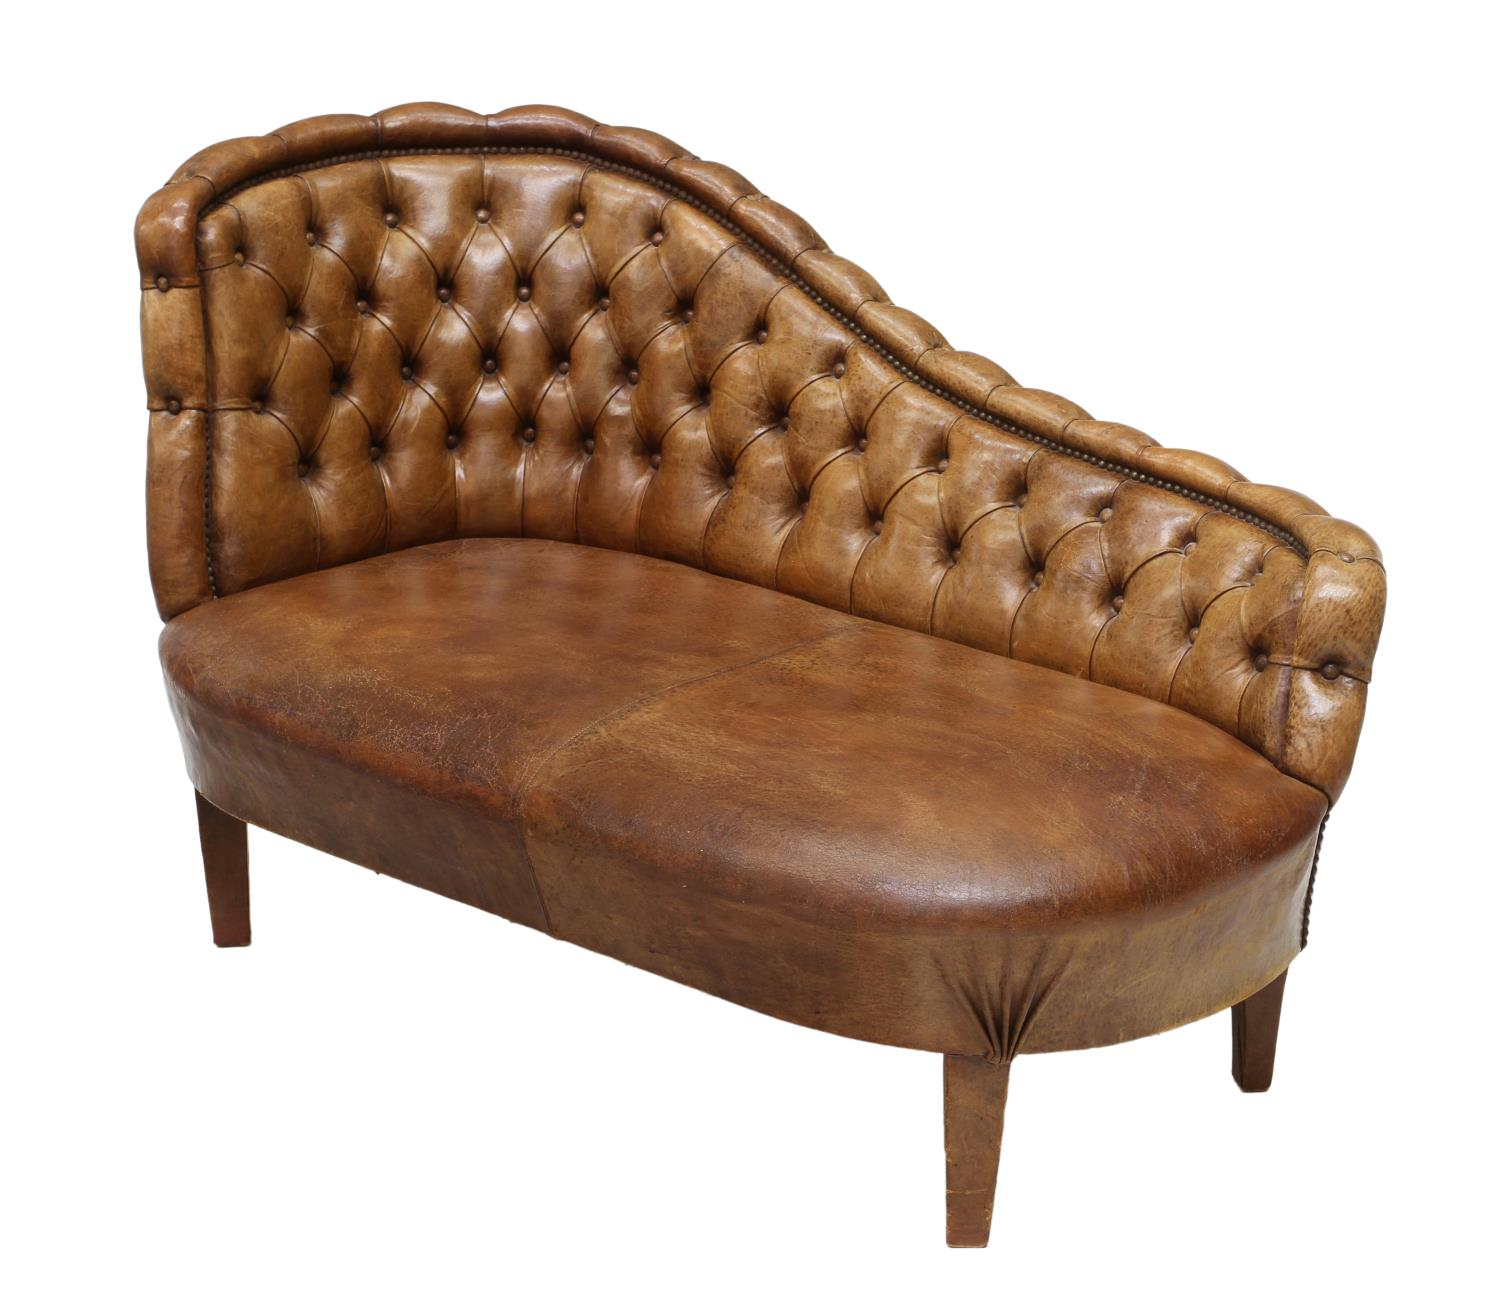 Tufted brown leather chaise lounge winter estates for Brown leather lounge with chaise